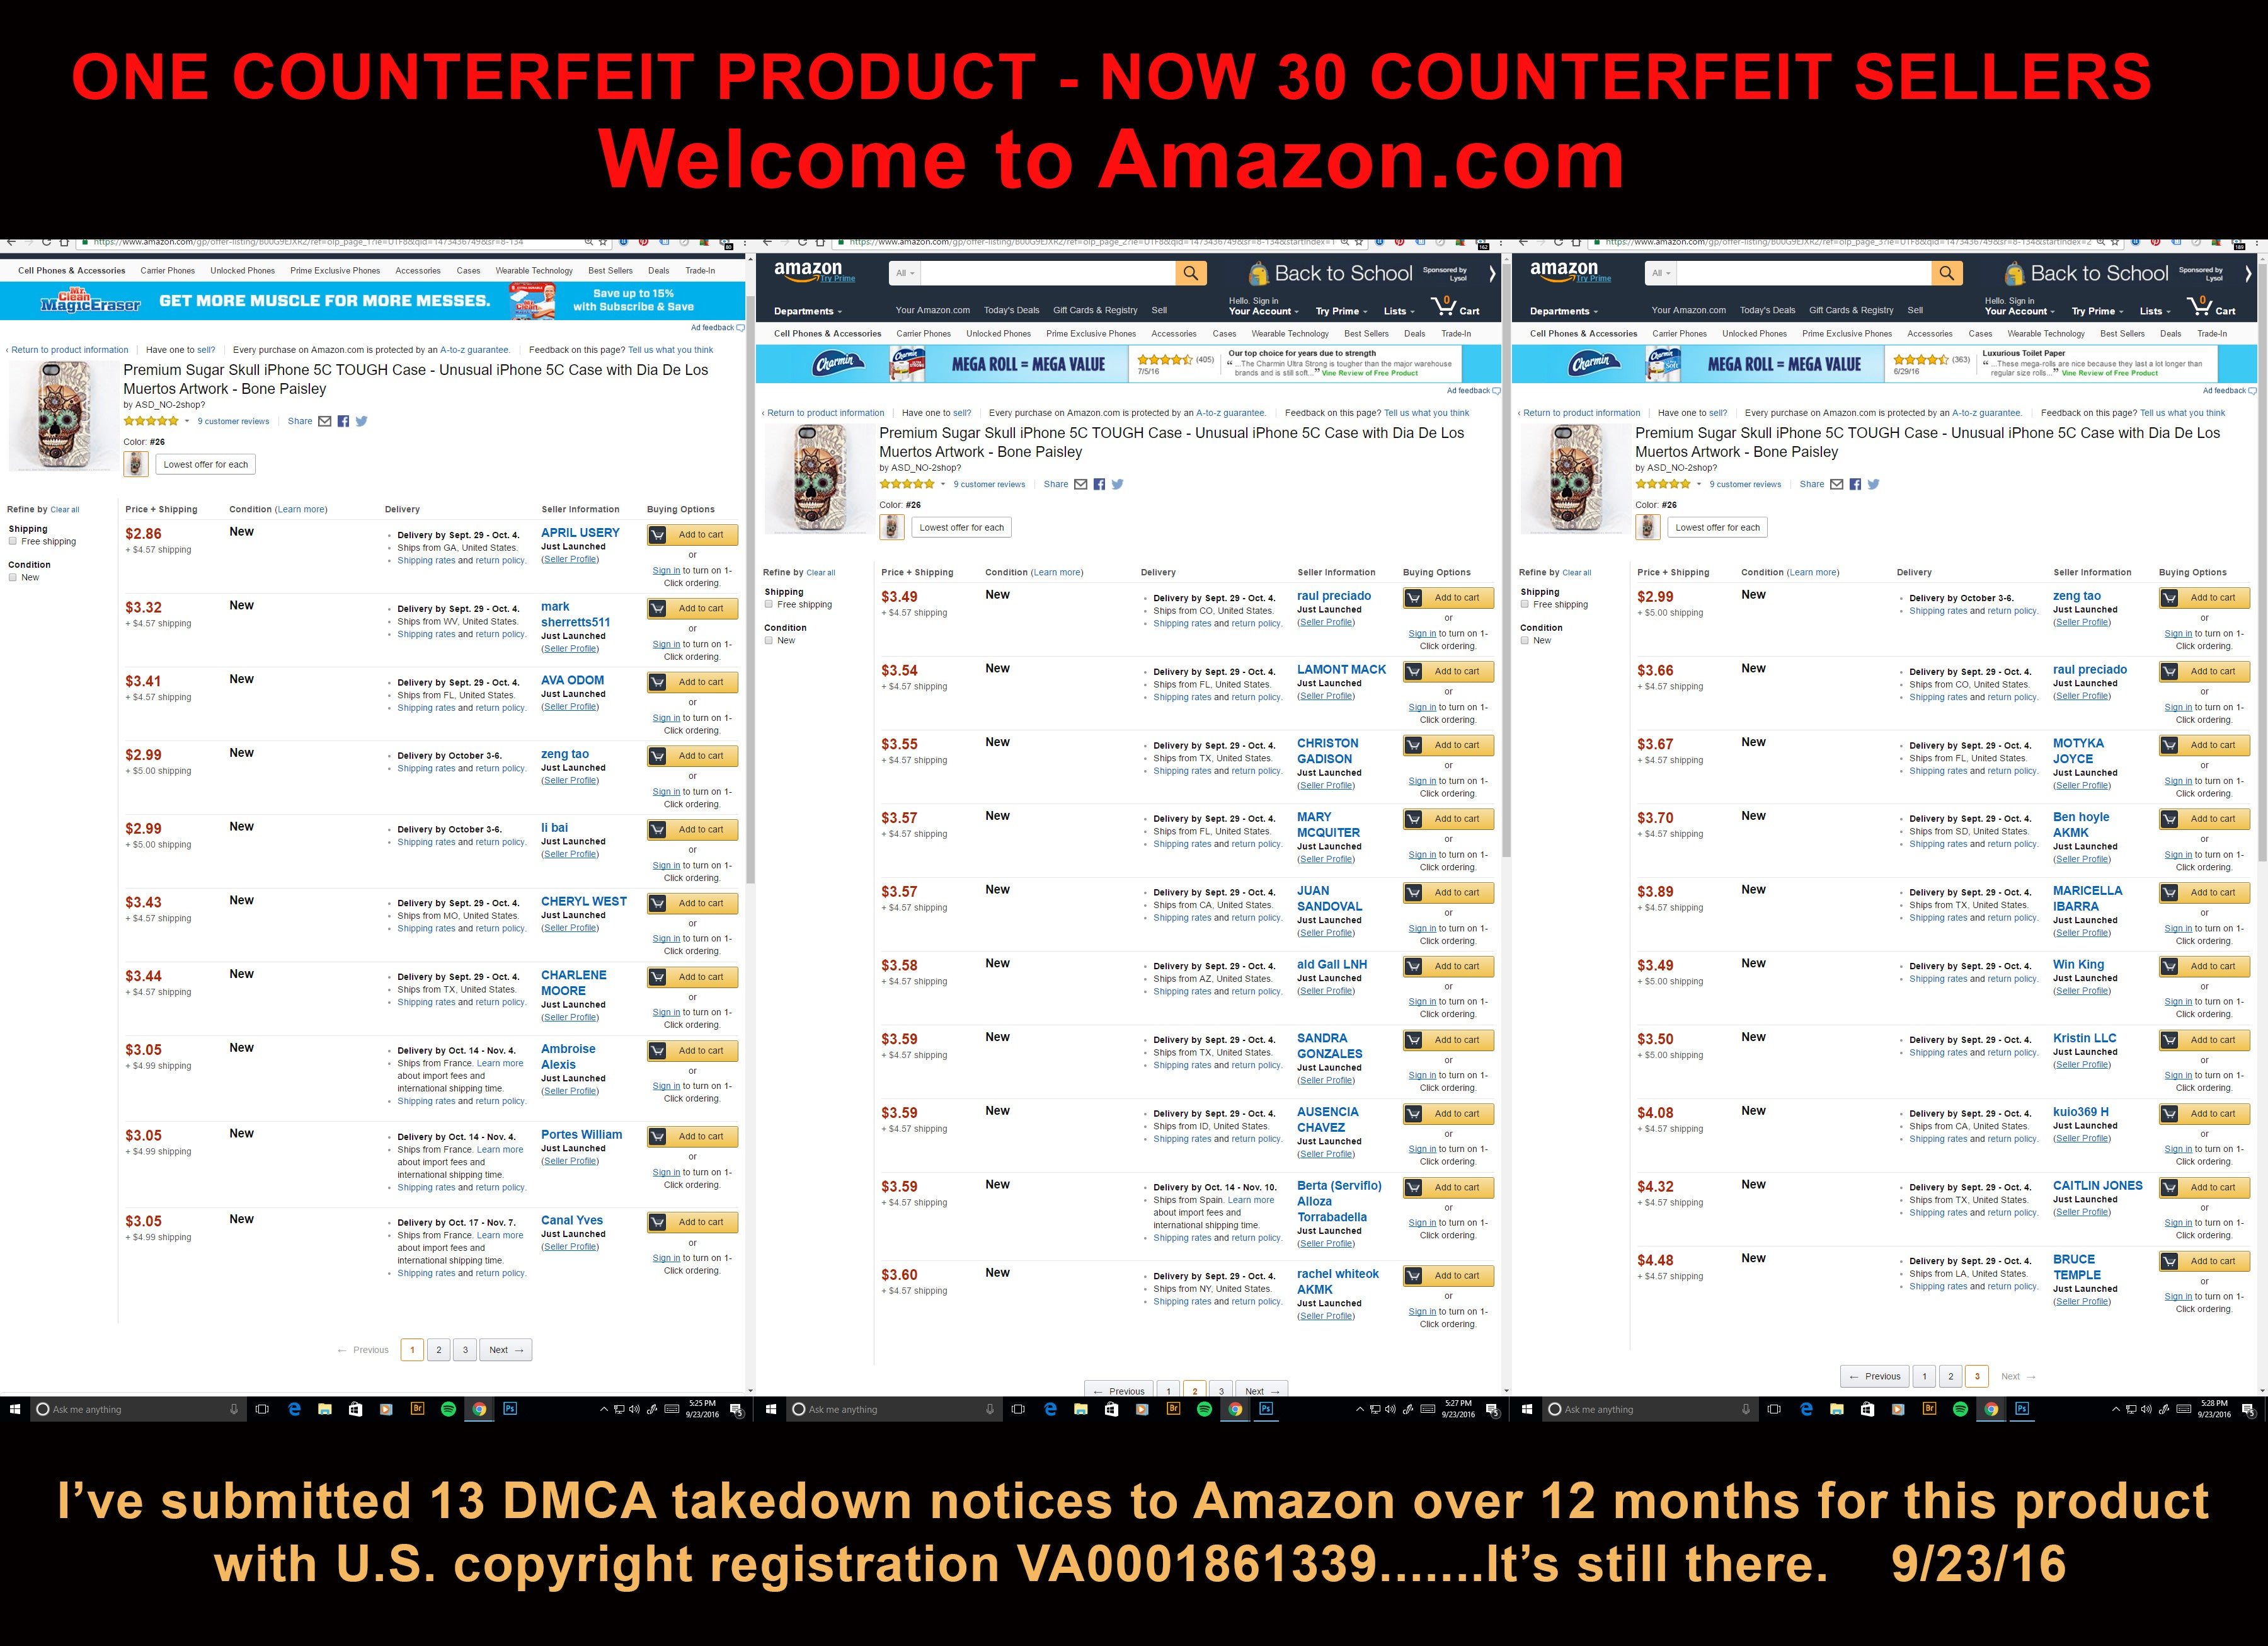 Artists Unite Against Amazon - Stop Selling Counterfeit